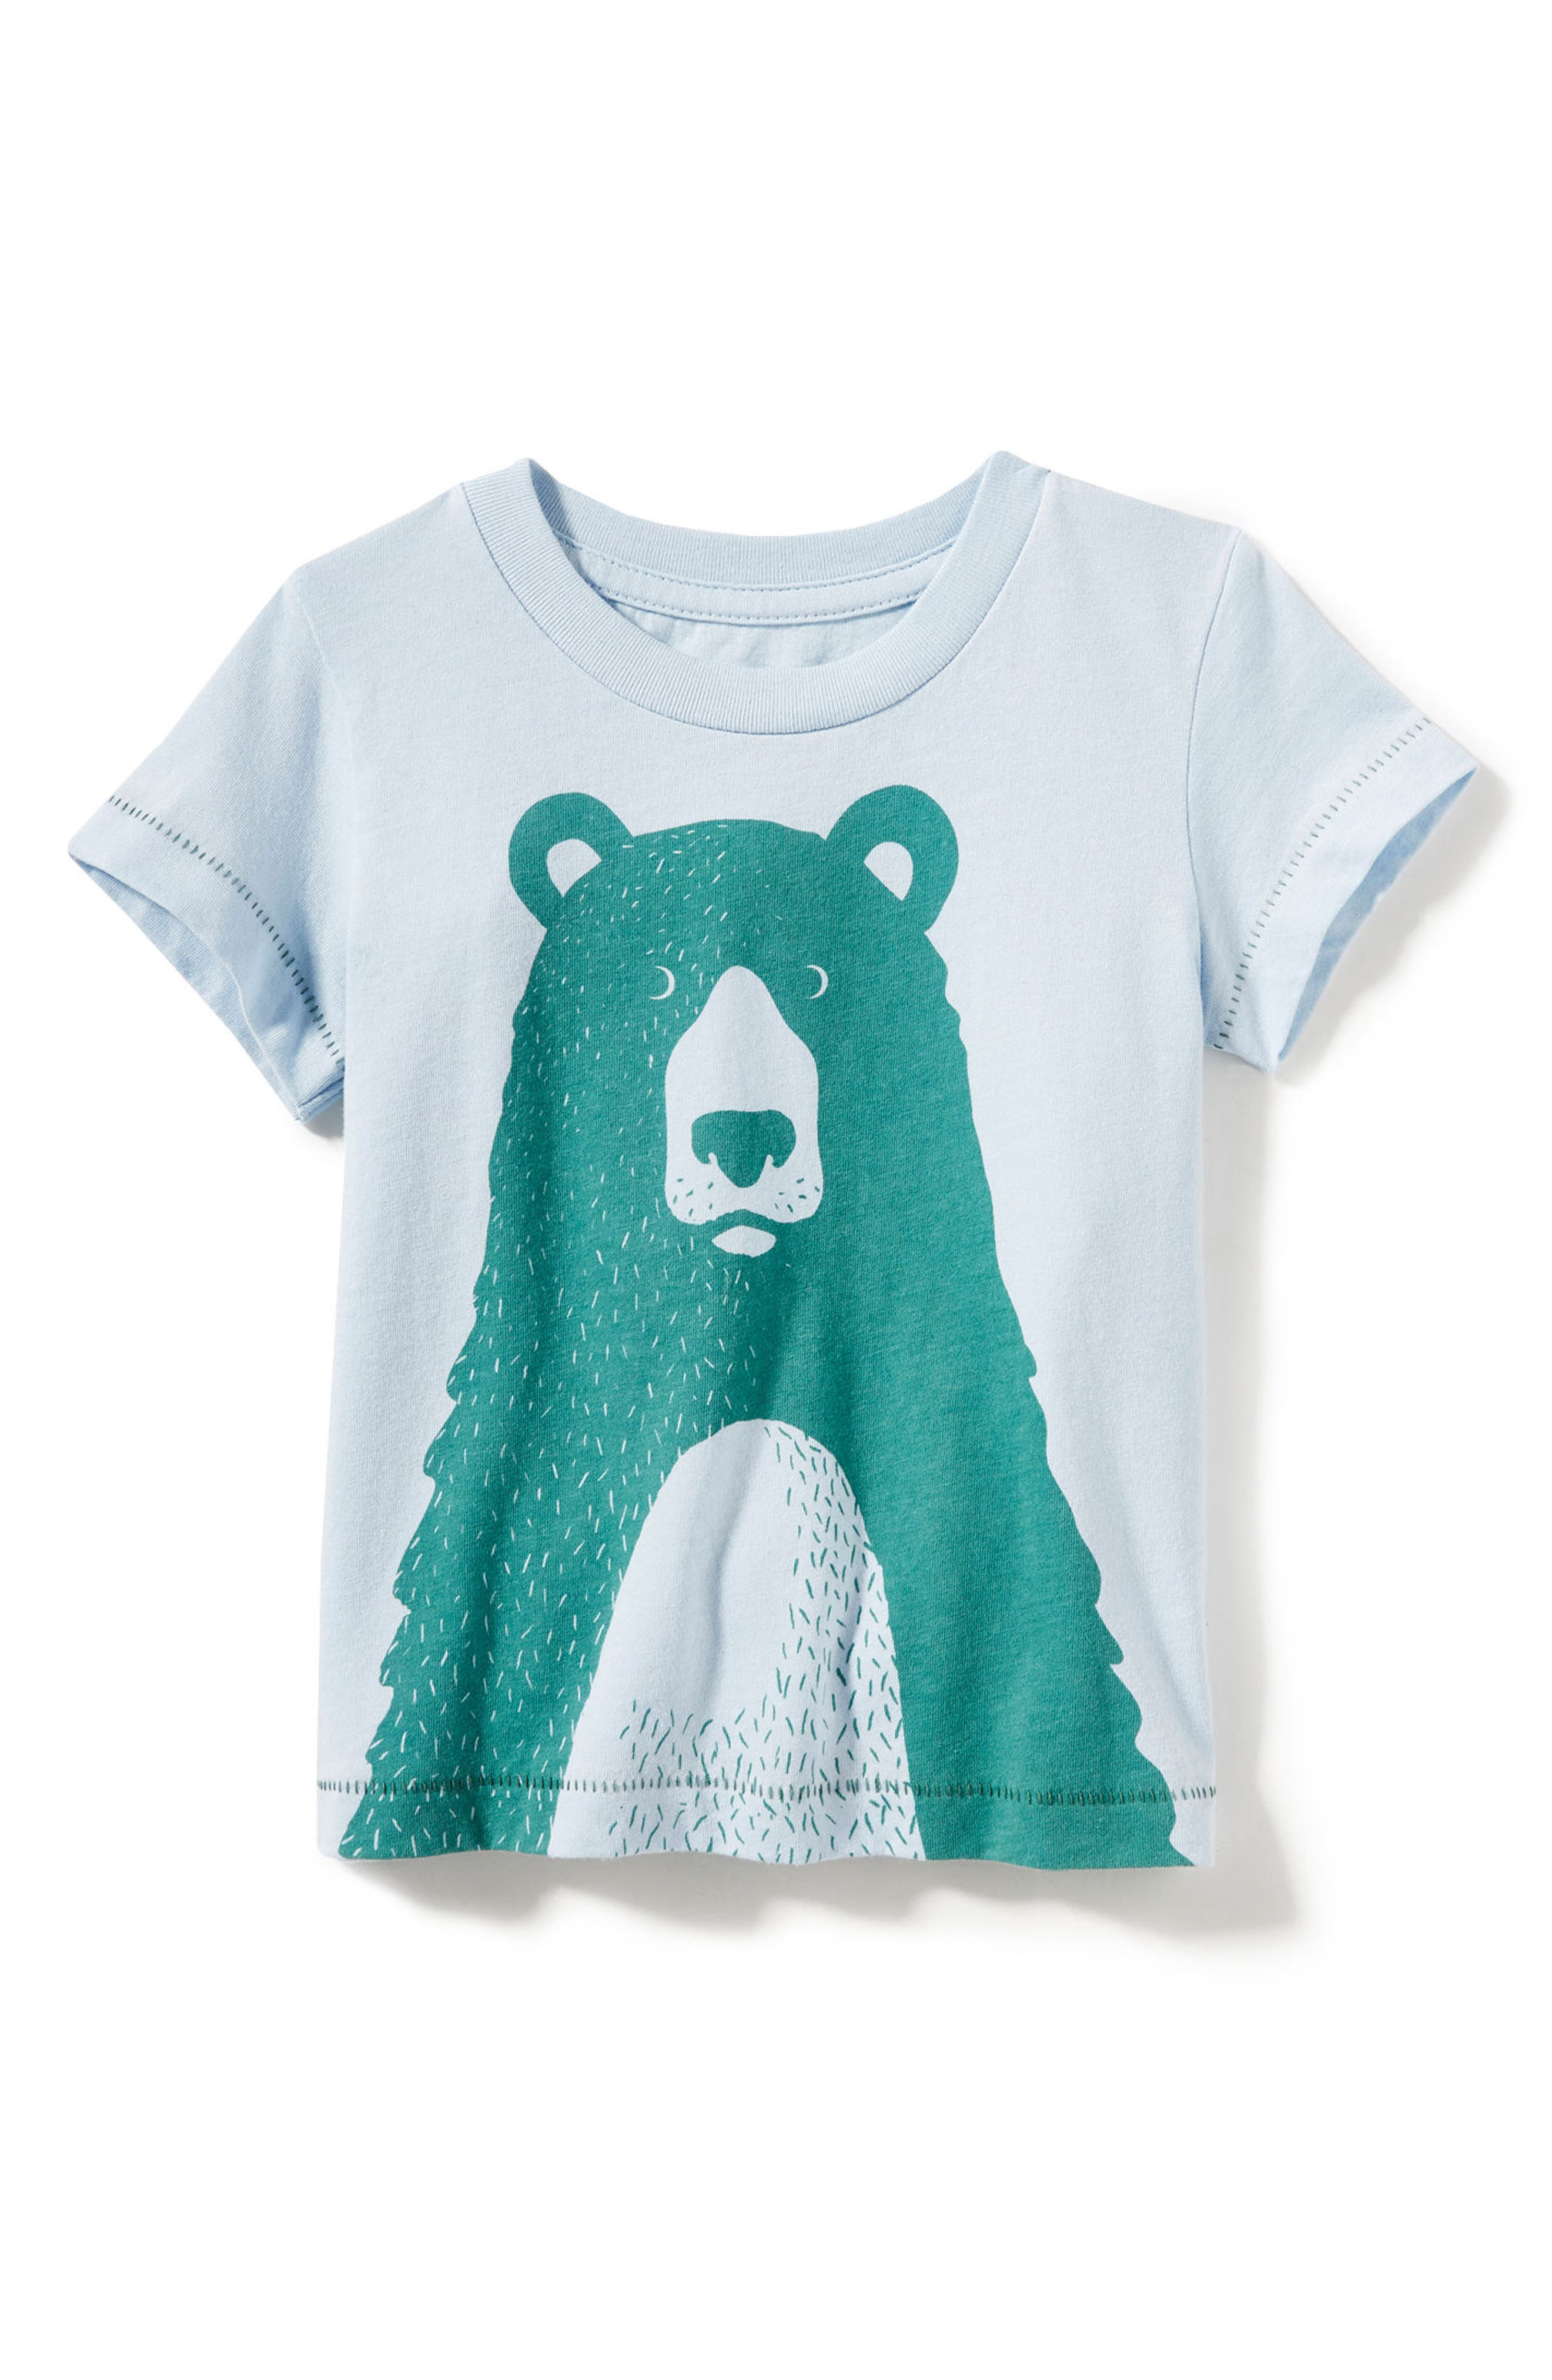 Alternate Image 1 Selected - Peek Big Bear Graphic T-Shirt (Baby Boys)